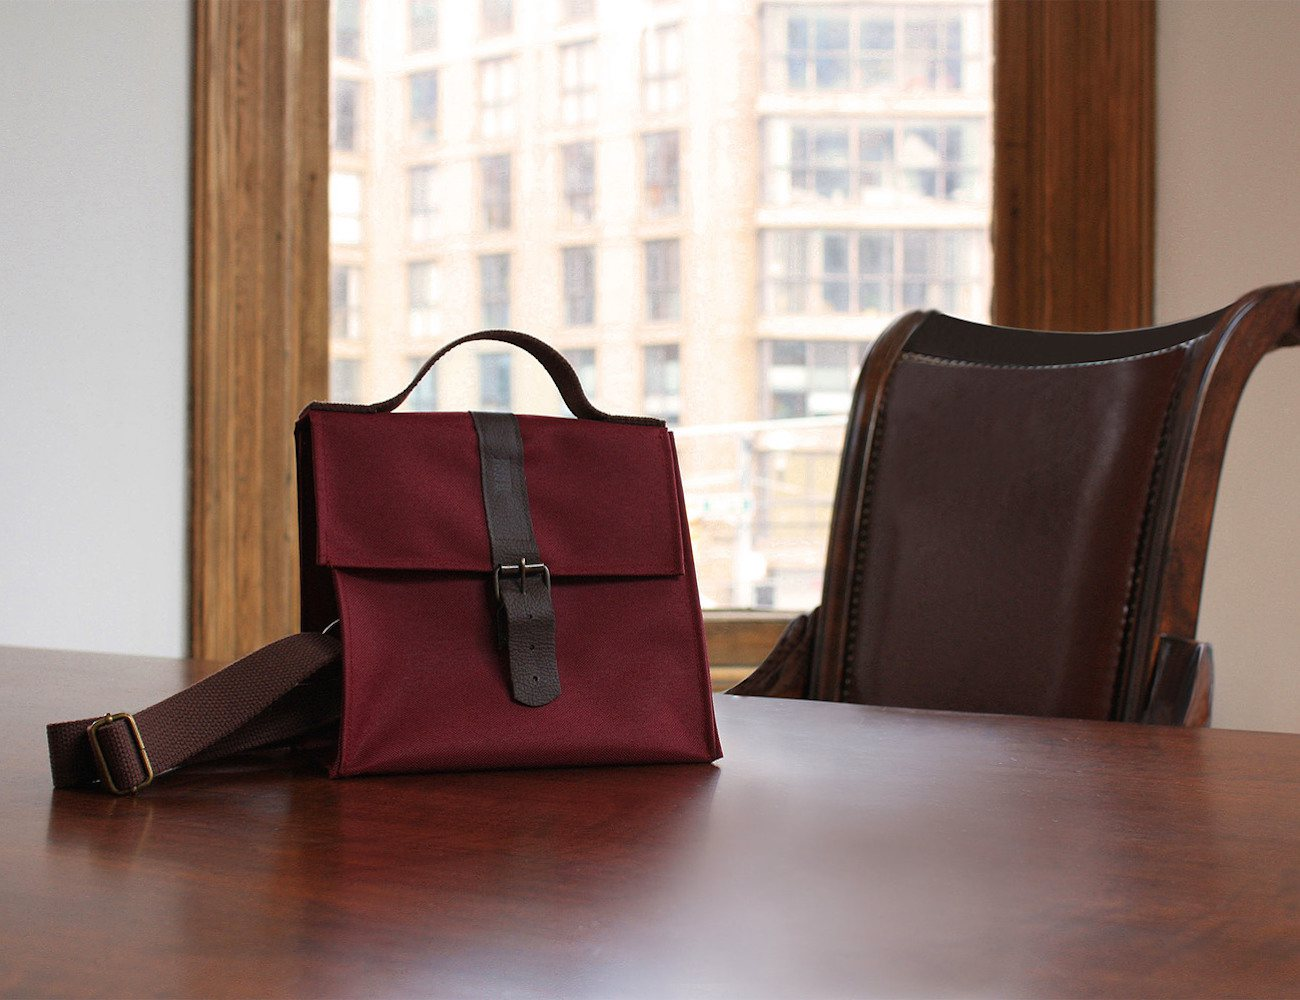 The Colborne Bag: The Design-Driven Lunch Bag